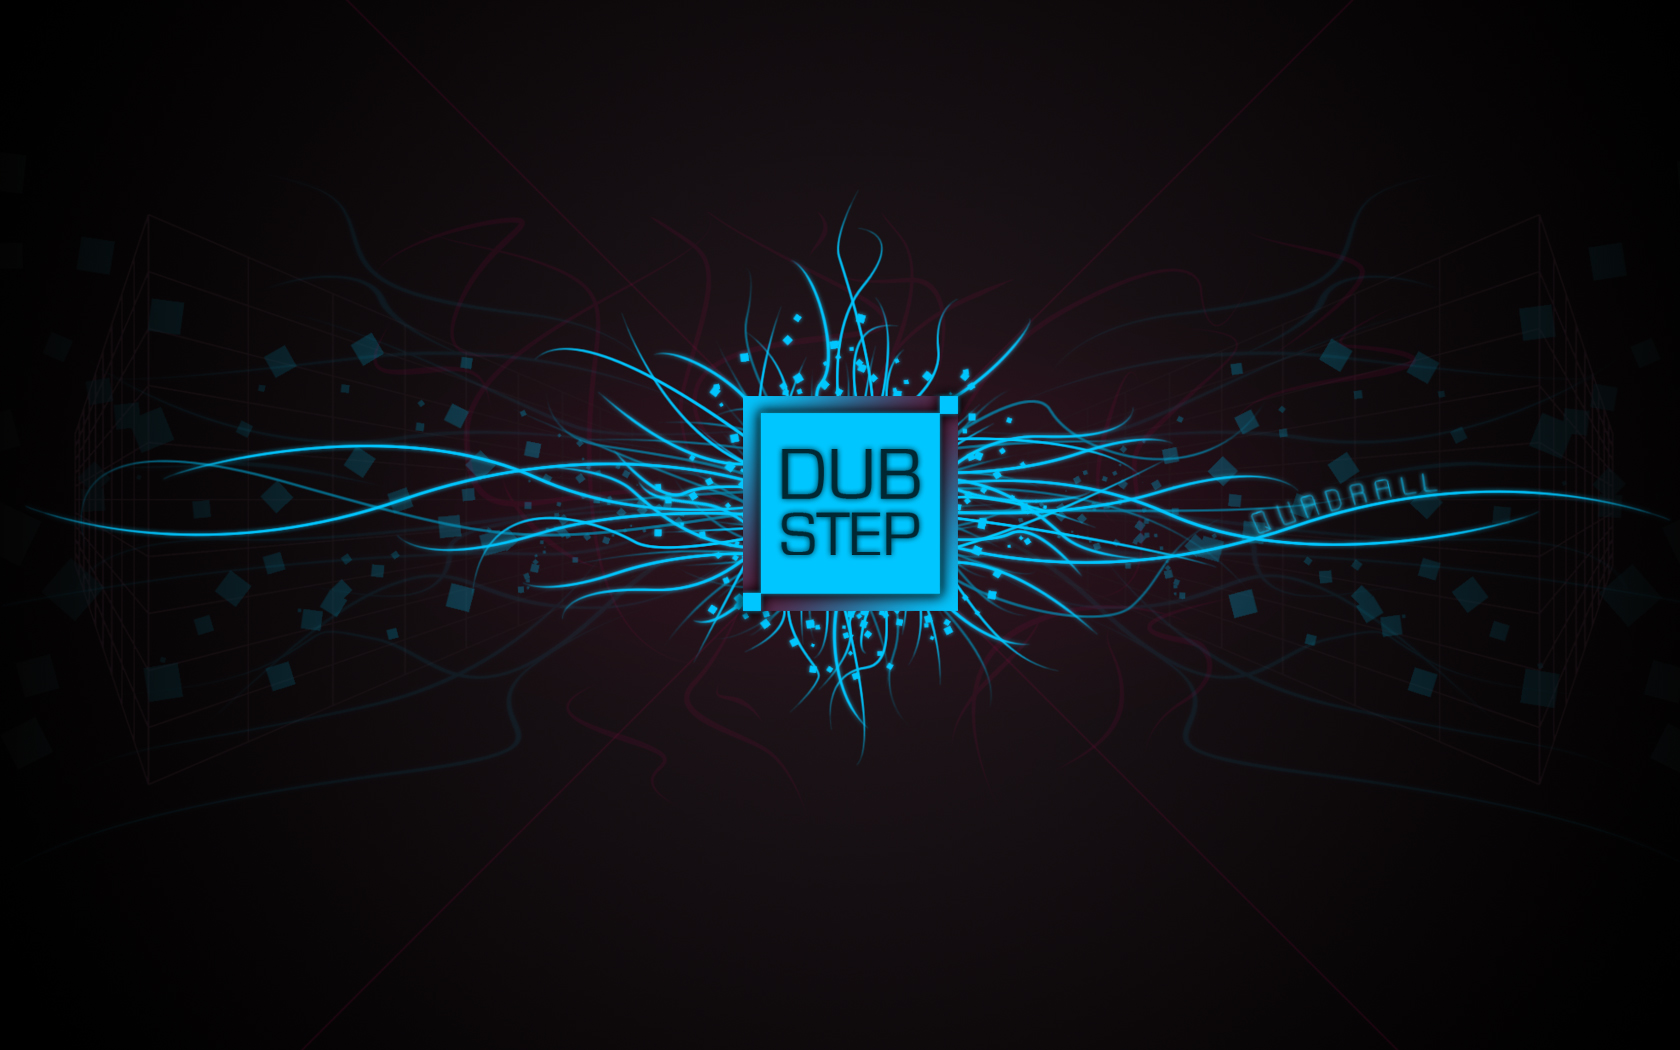 ... dubstep wallpaper by Lynx-iz